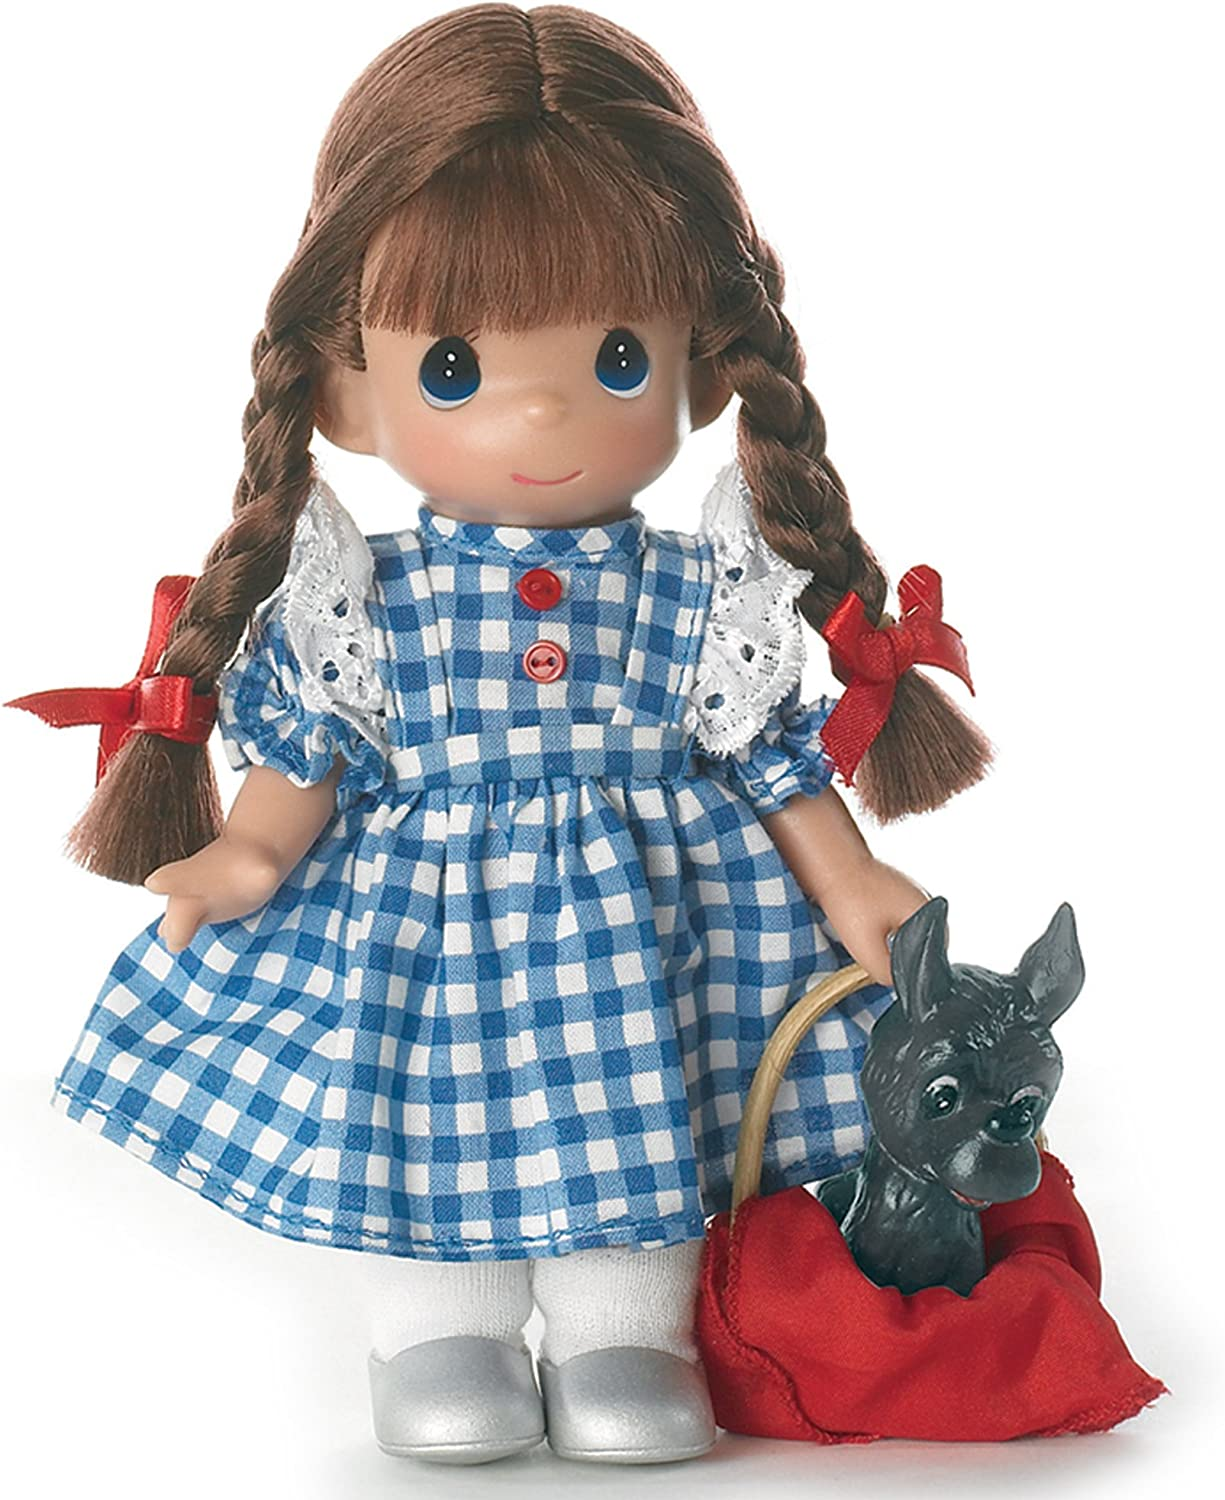 The Doll Maker Precious Moments Dolls, Linda Rick, Dorothy, Home is Where The Heart is, Wizard of Oz, 7 inch Doll, One Color